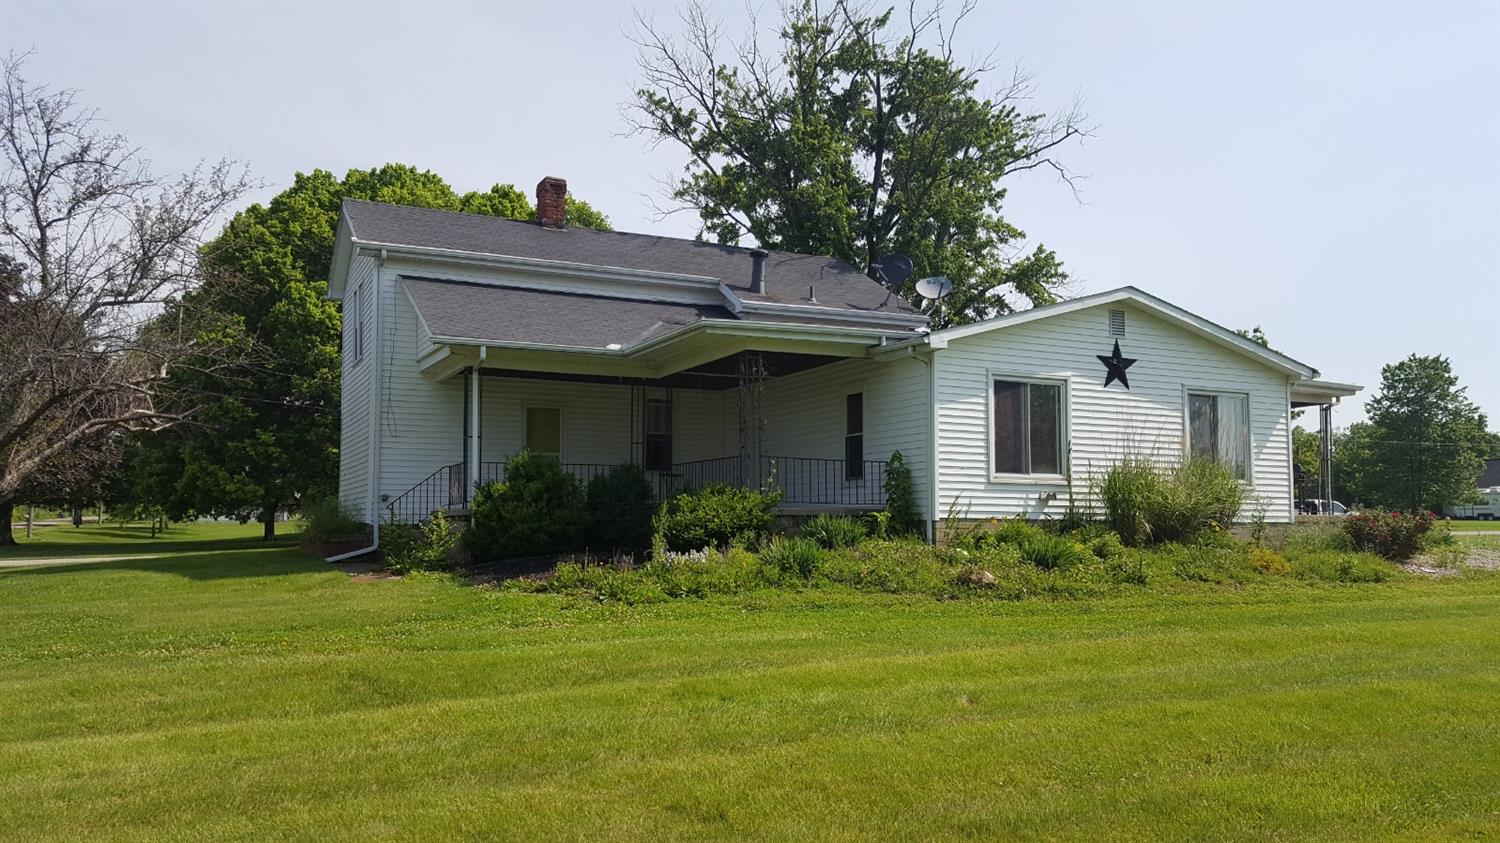 3344 Cotton Run Rd St. Clair Twp., OH